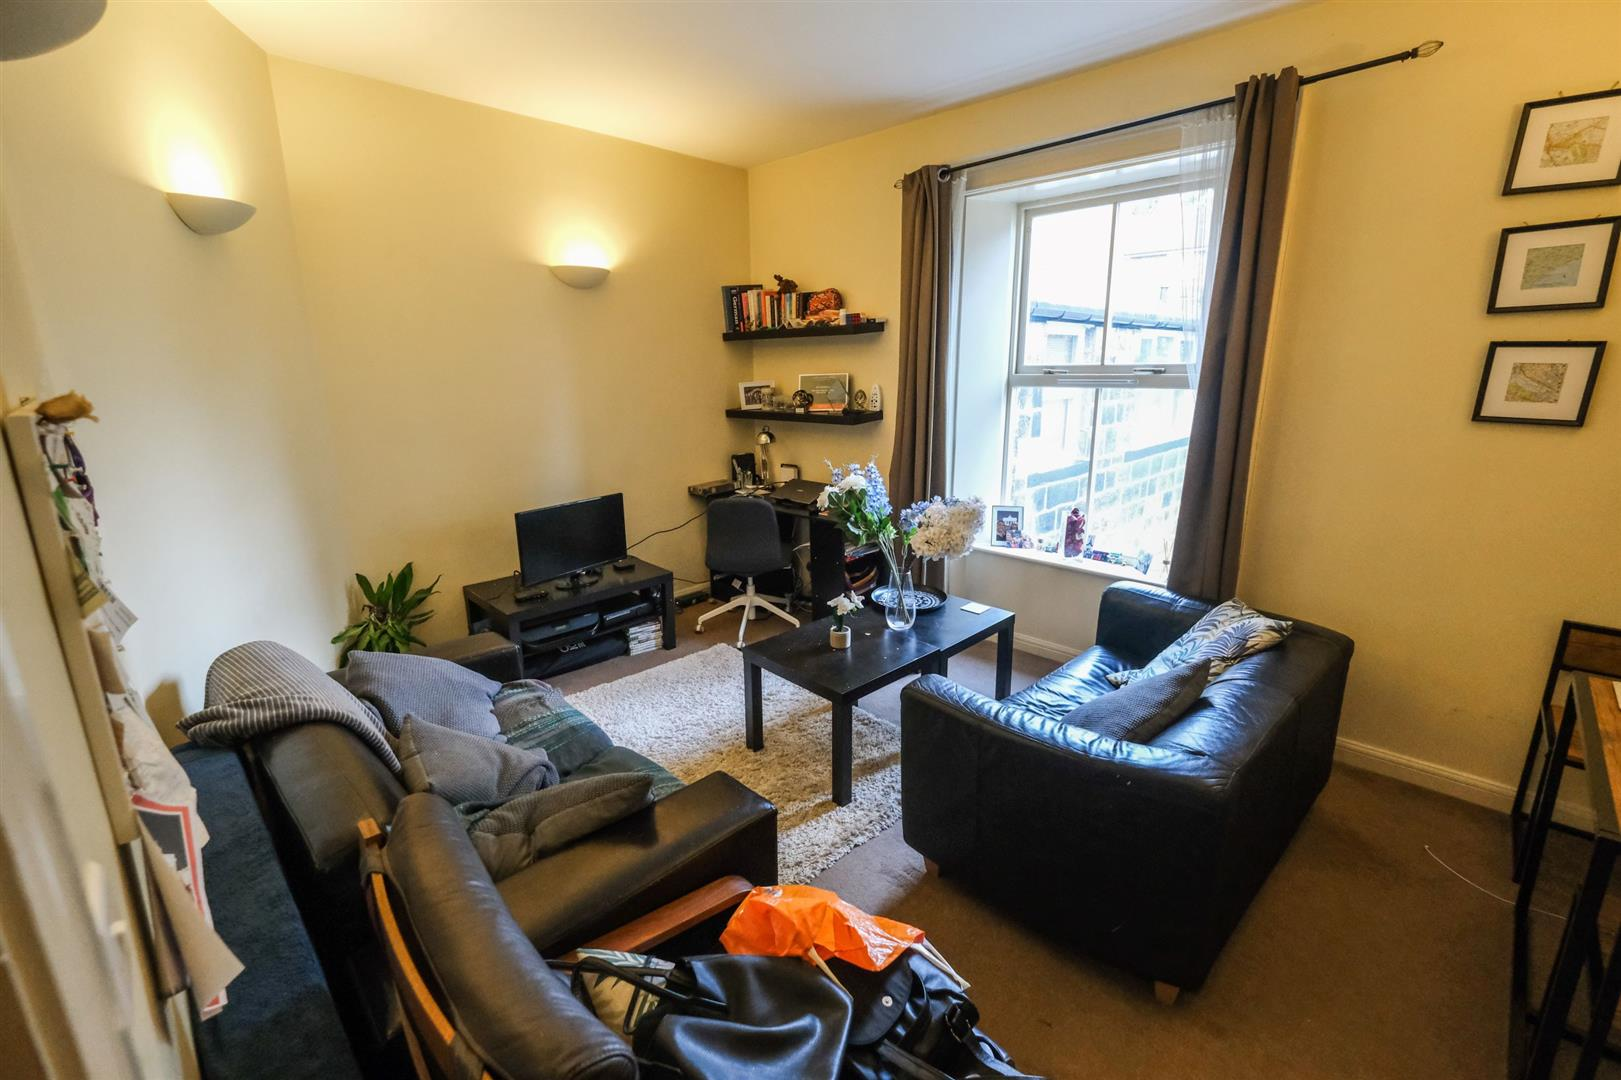 1 bedroom furnished flat in London SW1P 4SB image